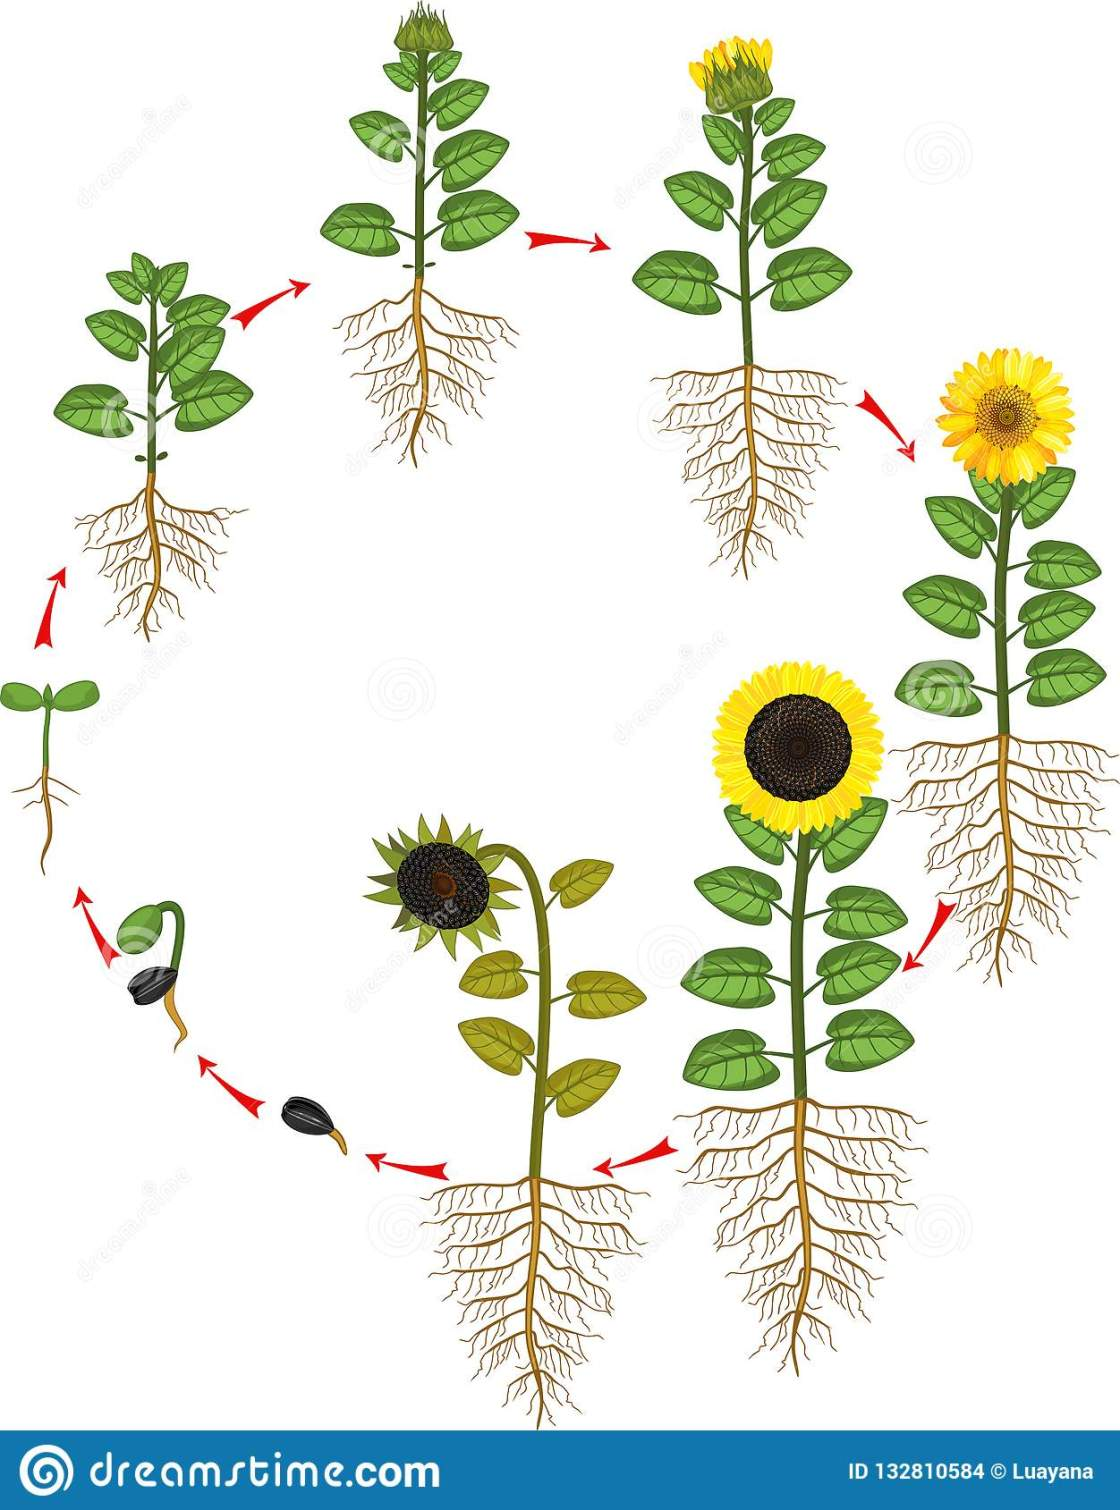 sunflower-life-cycle-growth-stages-seed-to-flowering-fruit-bearing-plant-root-system-sunflower-life-cycle-growth-132810584